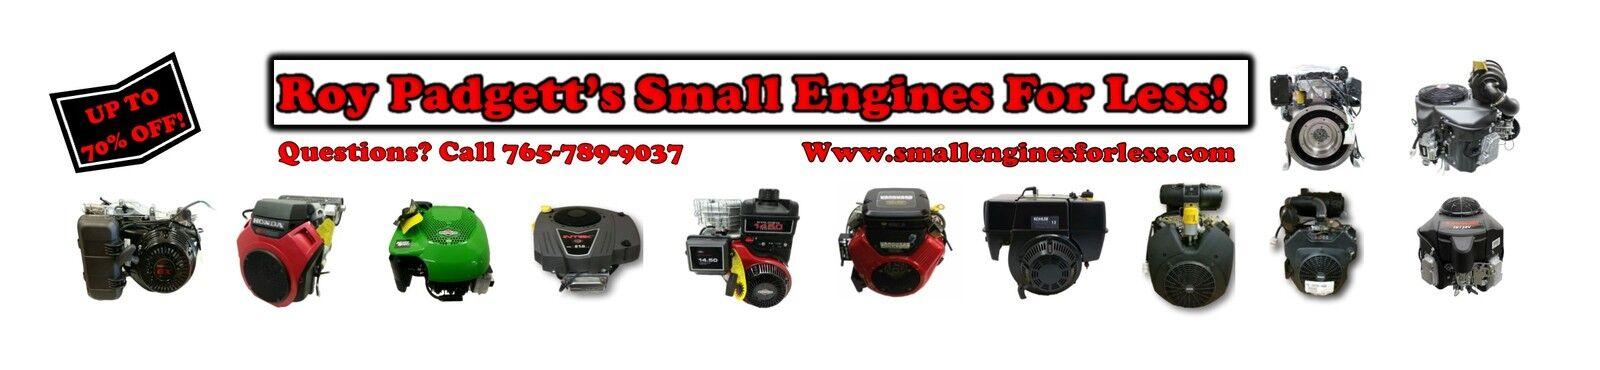 Small Engines For Less